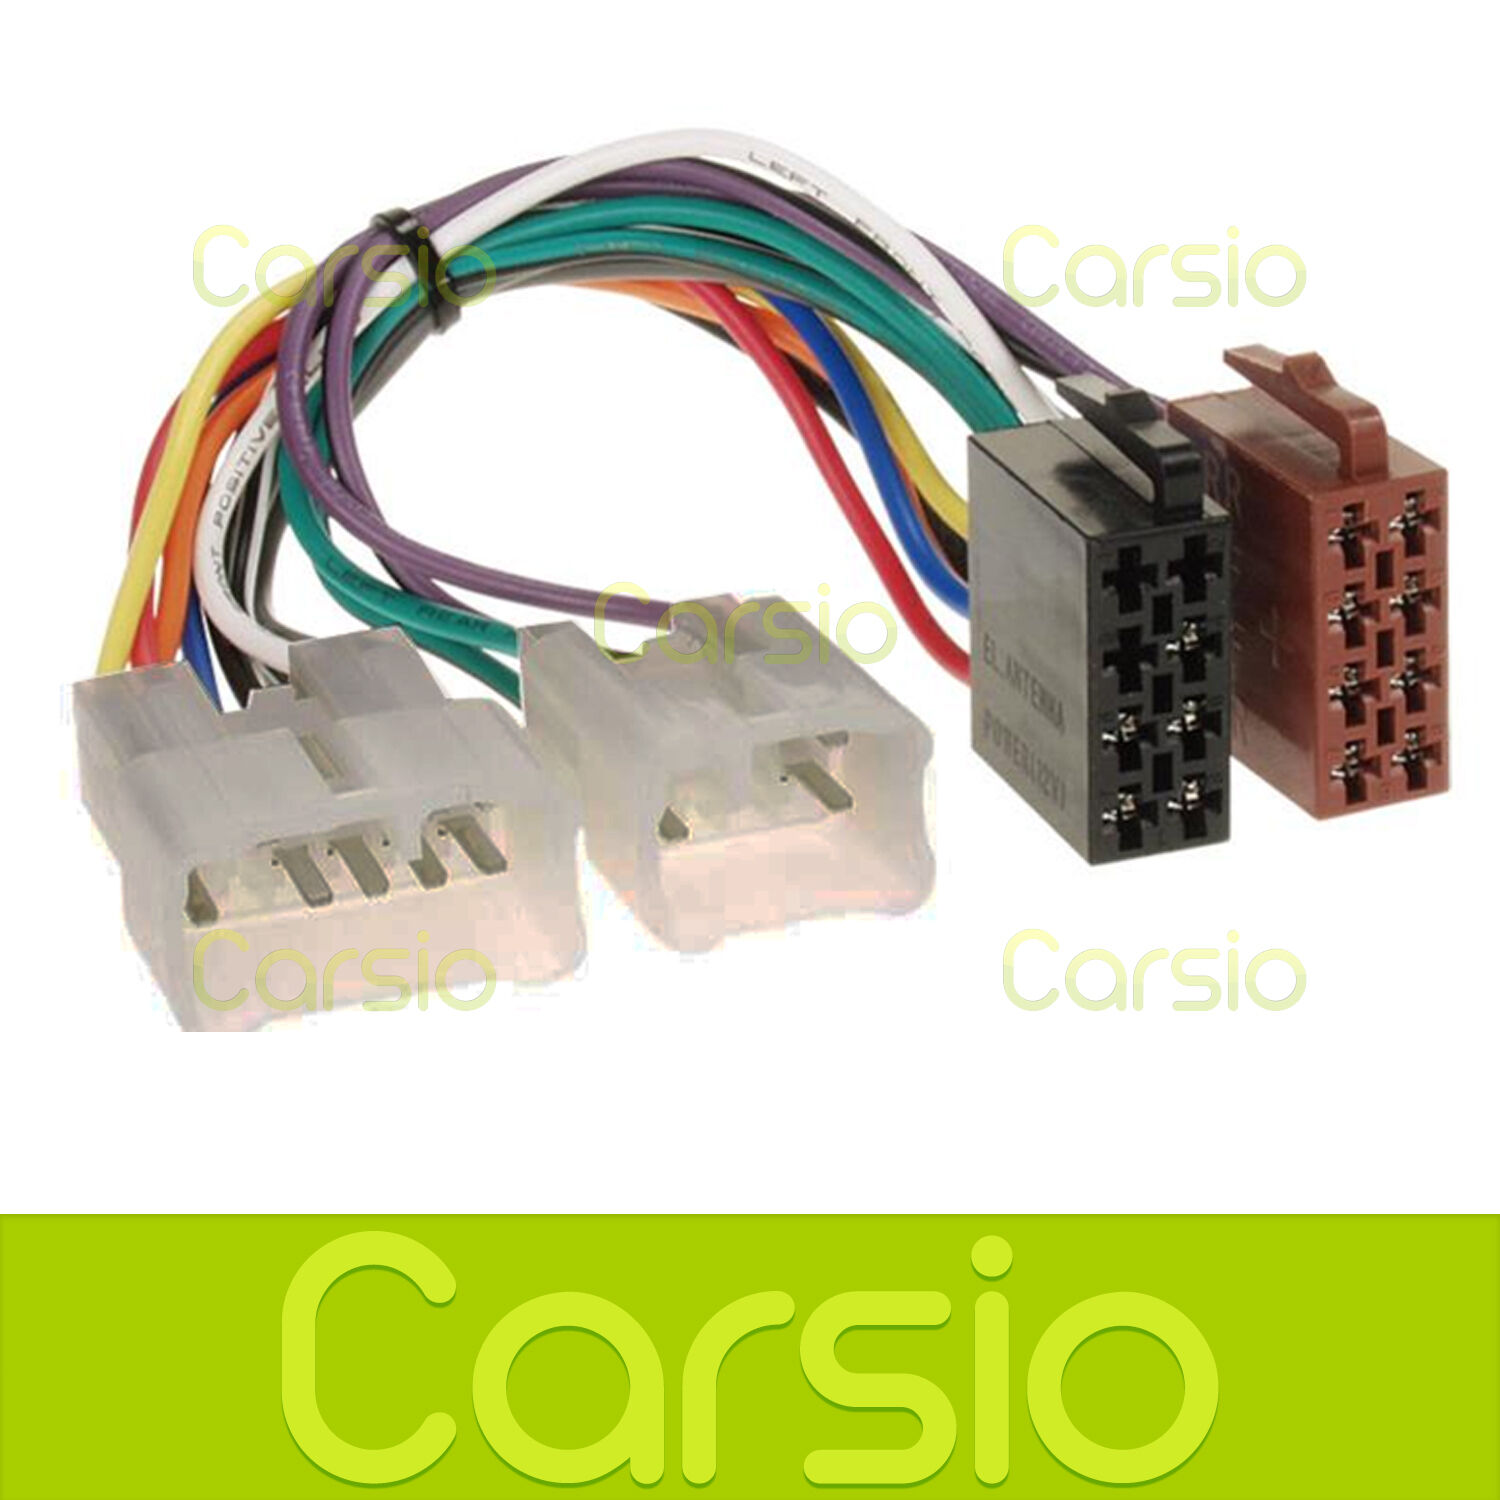 Daihatsu Wire Harness Wiring Library Car Stereo Radio Iso Connector Cable For Suzuki Terios Adaptor 1 Of See More